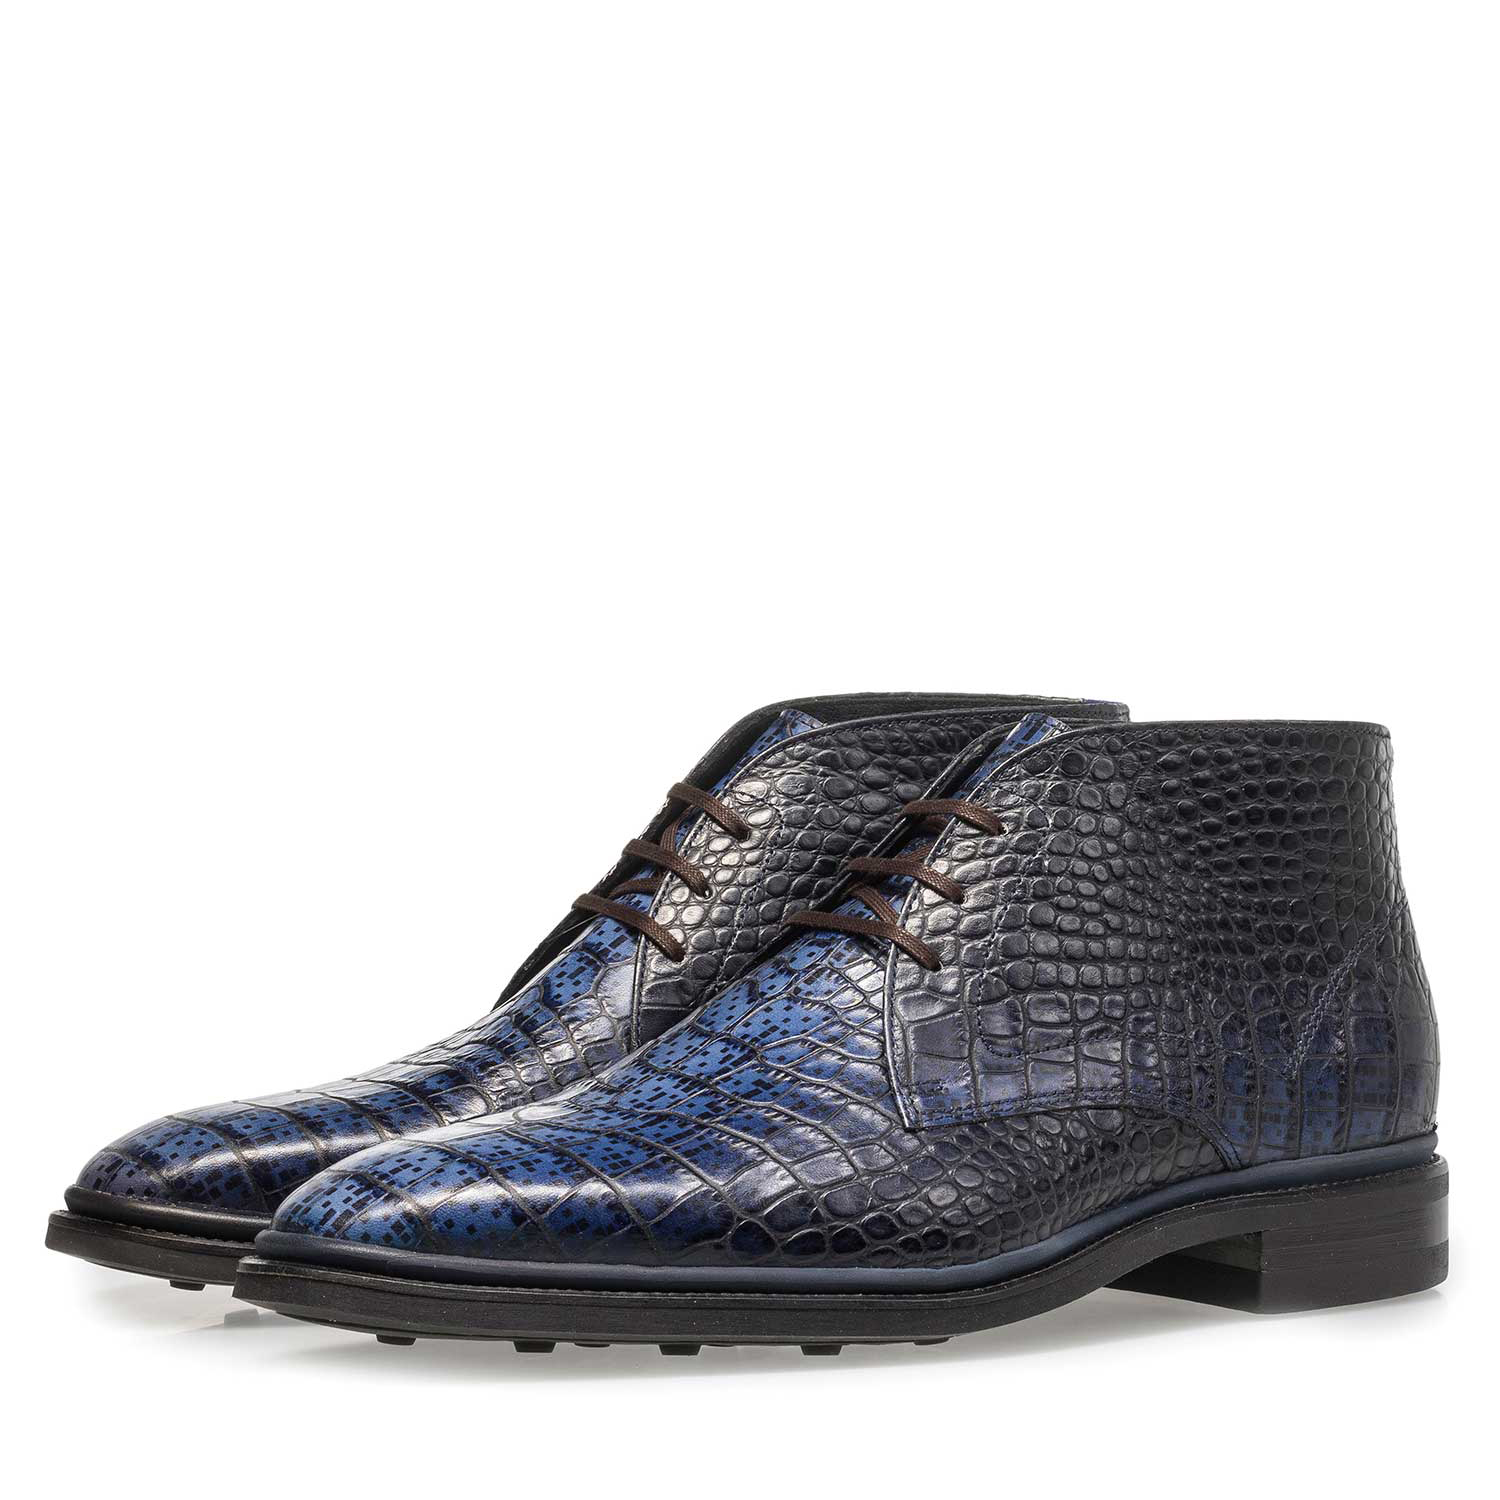 10623/02 - Premium blue croco leather lace shoe